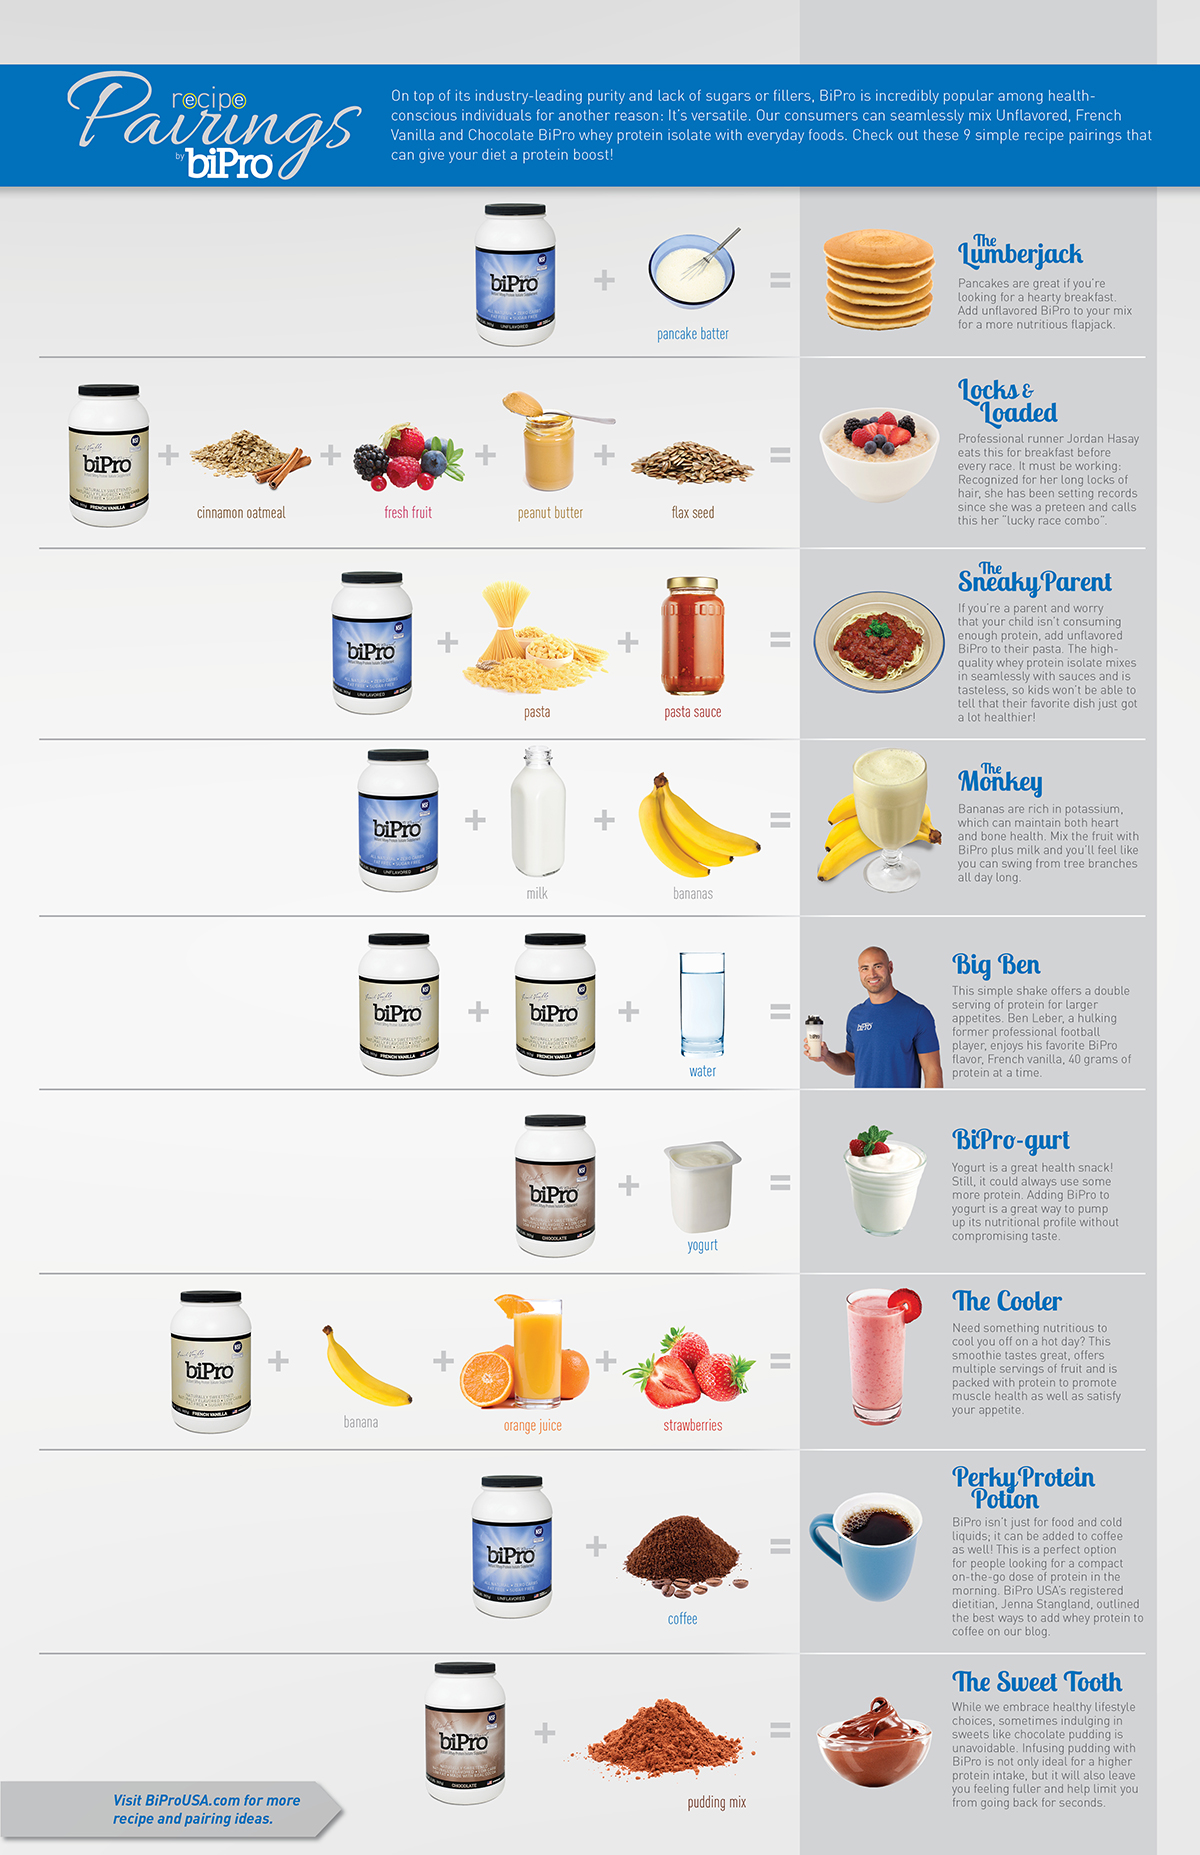 BiPro whey protein recipes